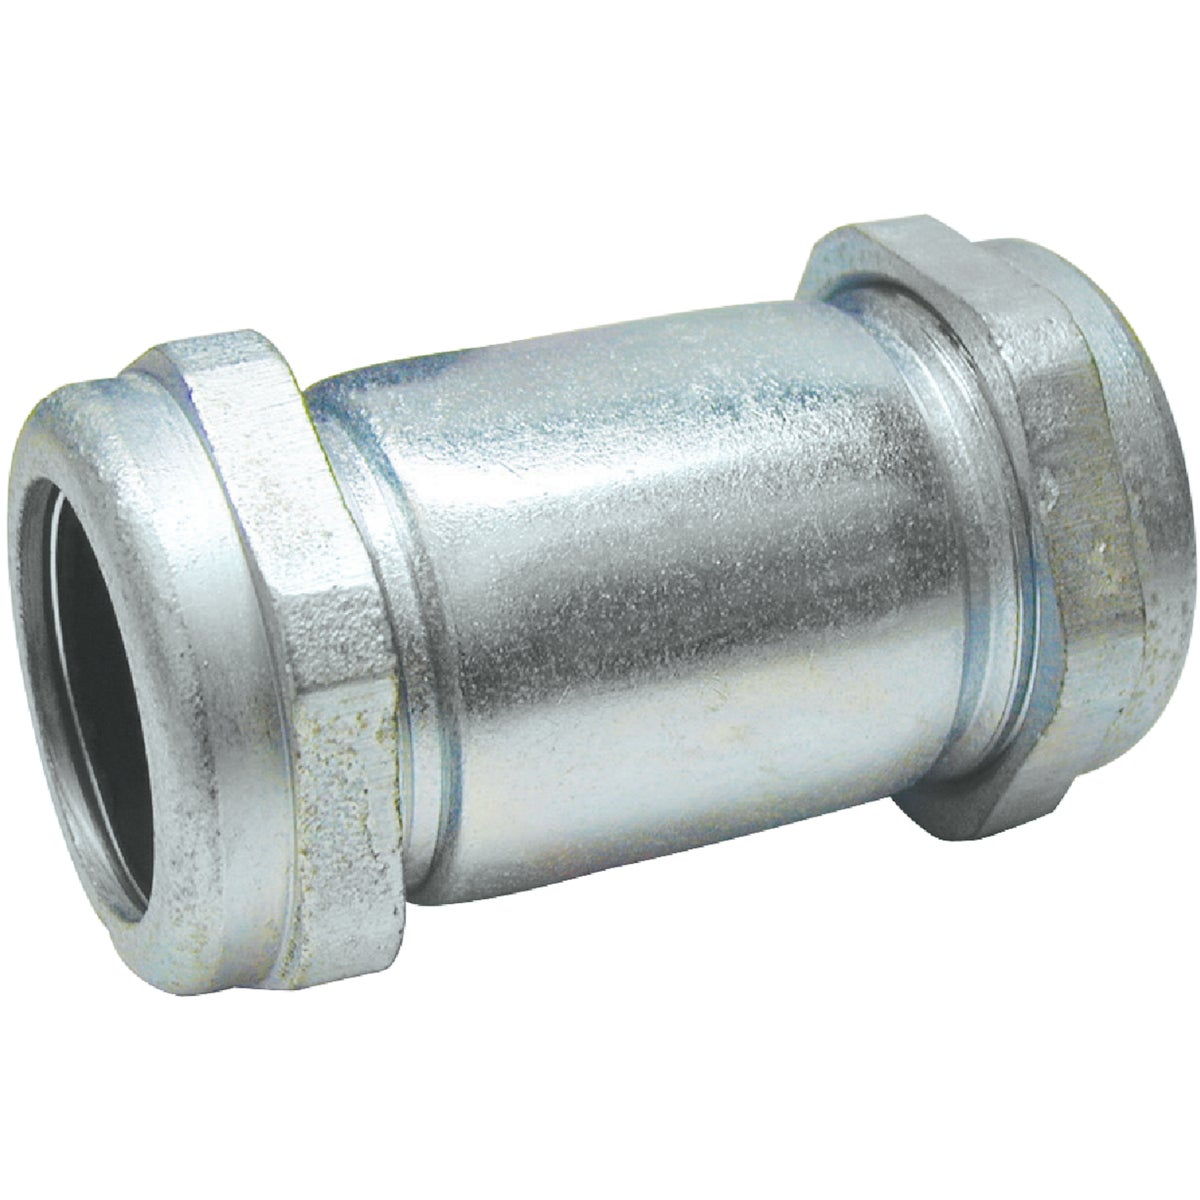 1-1/4X4-1/2GALV COUPLING